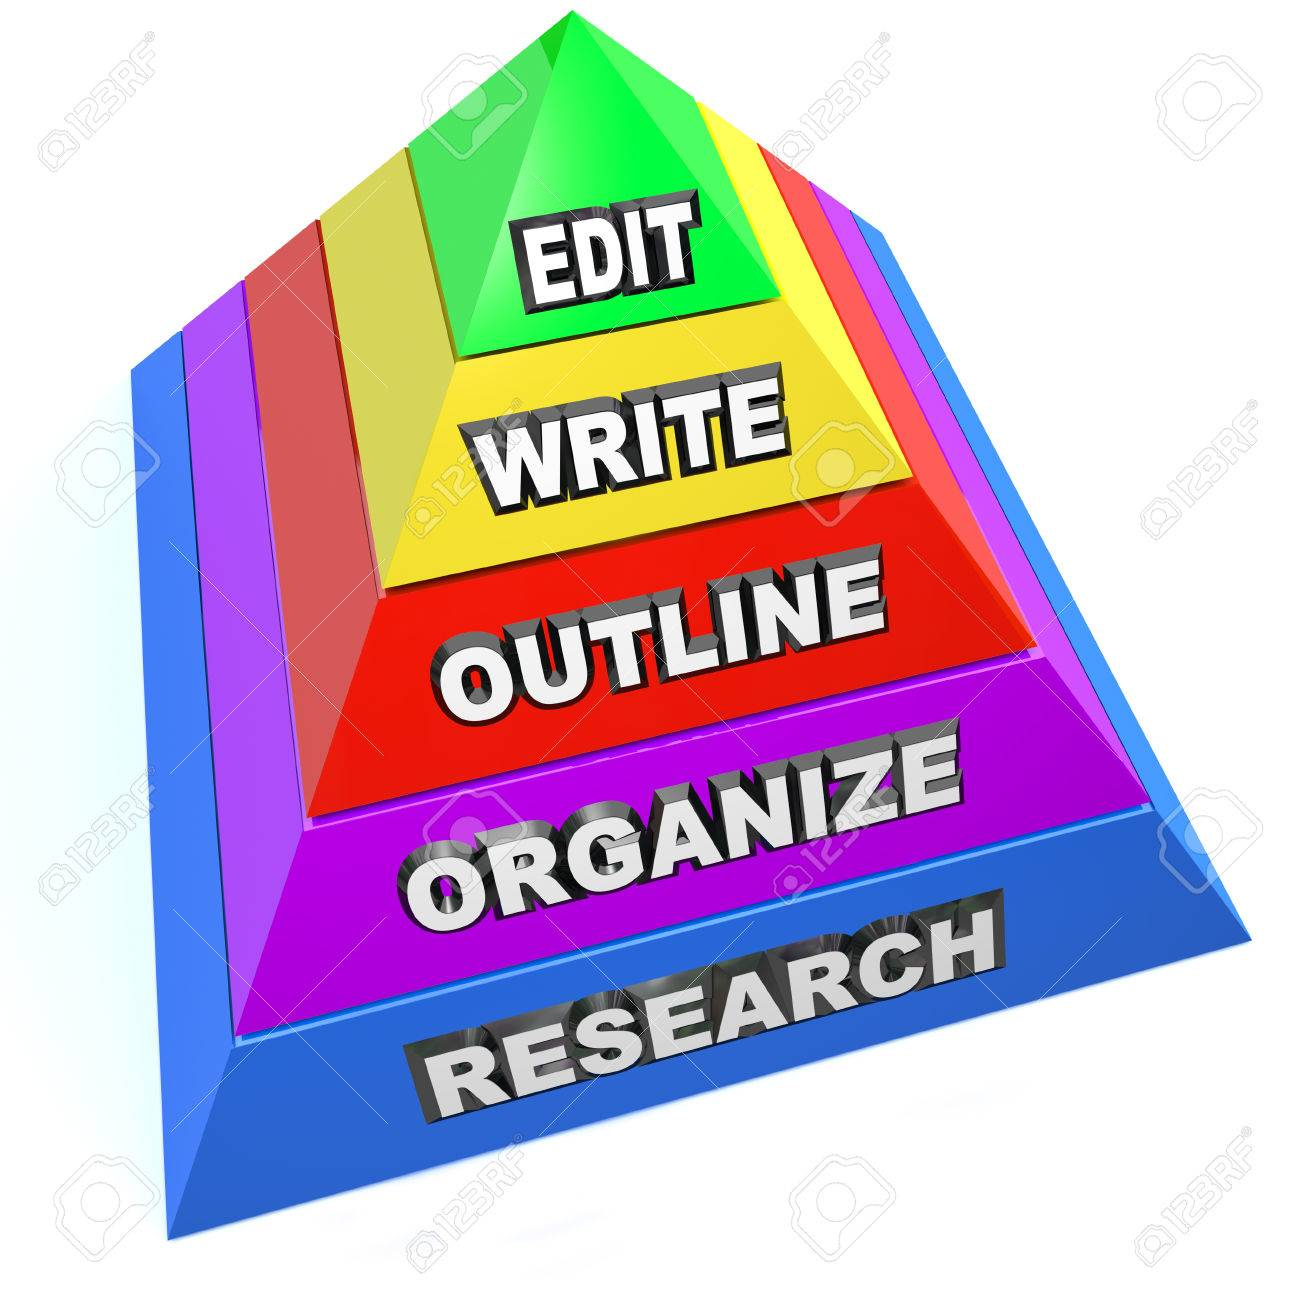 Edit, Write, Outline, Organize and Research steps on a pyramid Stock Photo - 25837381